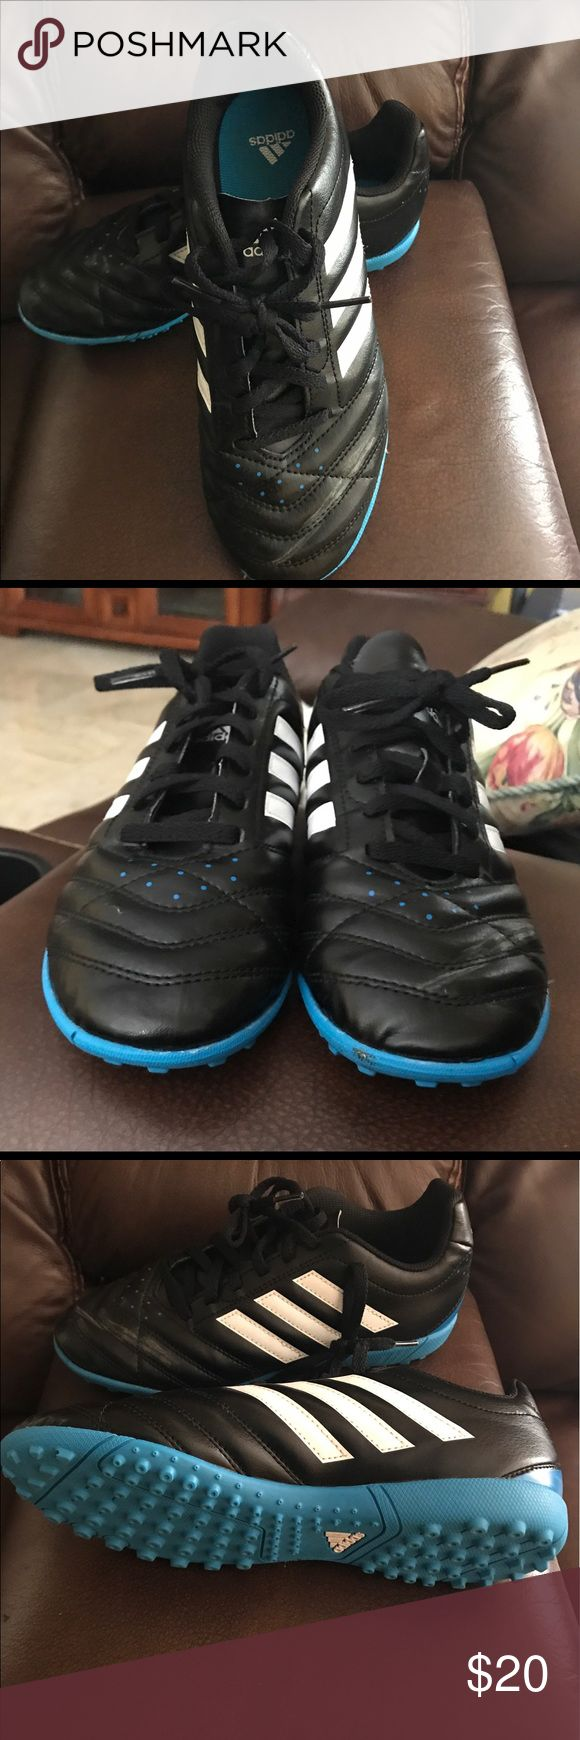 SOLD Kids Adidas indoor soccer shoes SOLD  in another site .  Kids Adidas indoor soccer shoes size 5 nearly new adidas Shoes Sneakers